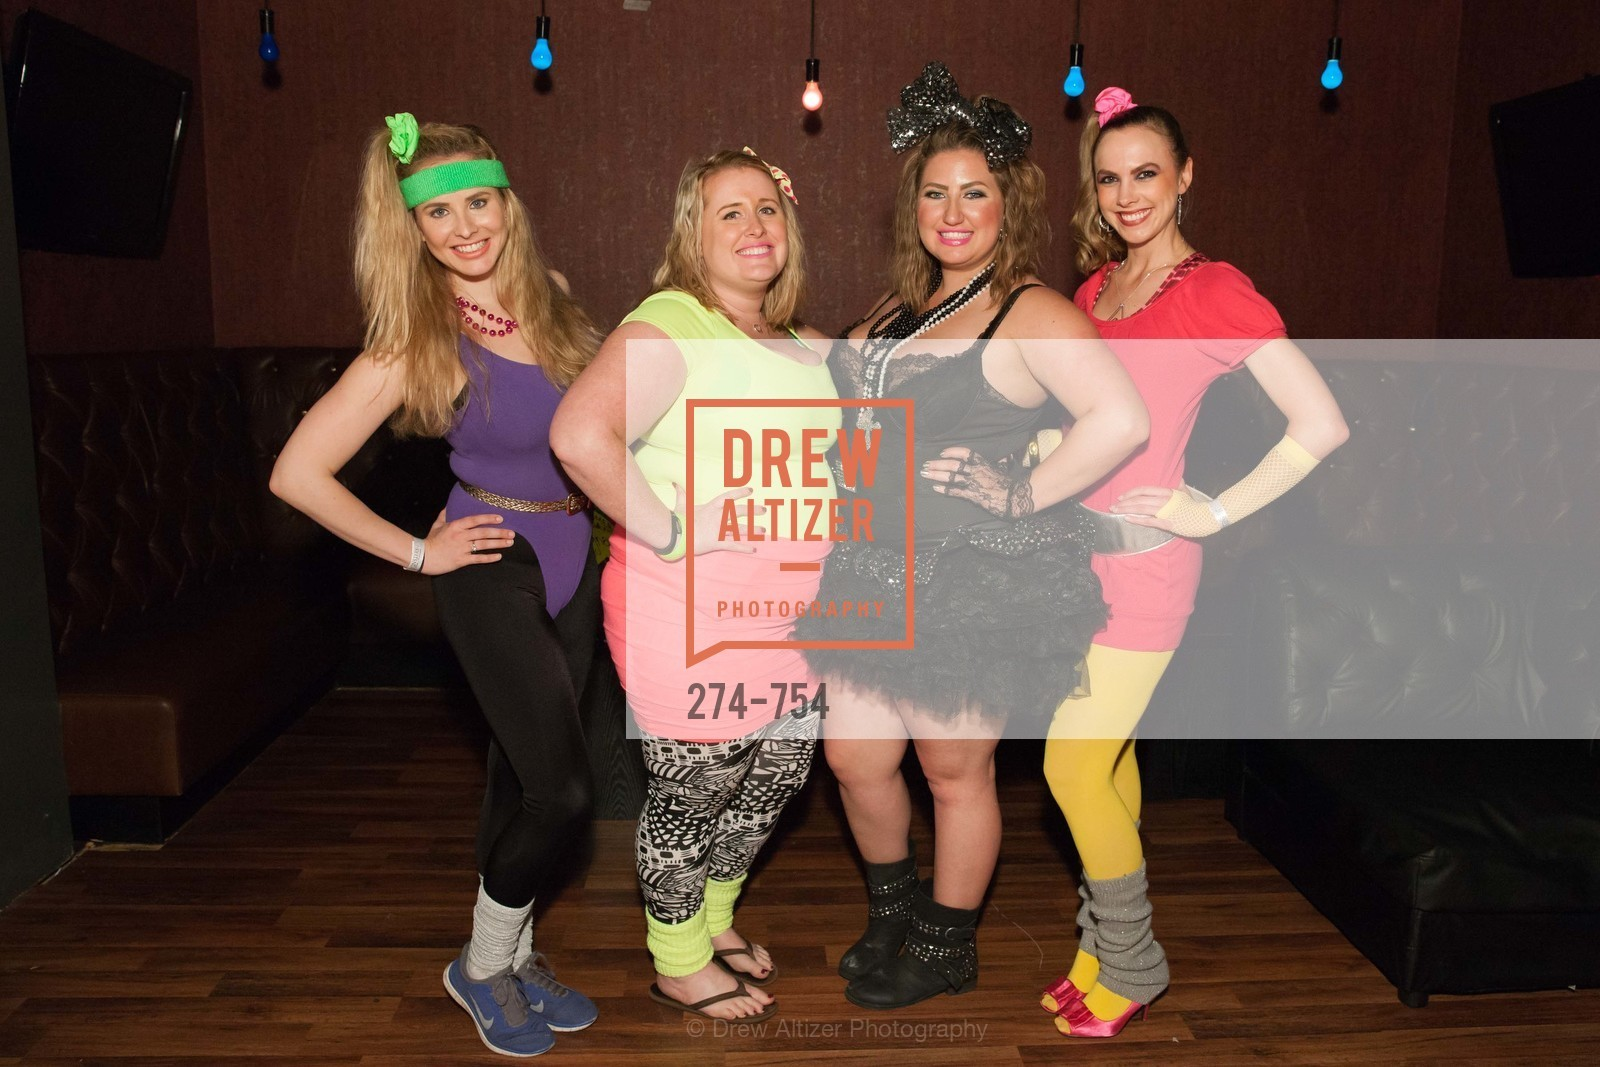 Elizabeth Sgarrella, Eryn Golden, Annie Benisch, Michelle Bertino, SPINSTERS OF SAN FRANCISCO Party Like It's 1985 Charity Party, US, May 29th, 2015,Drew Altizer, Drew Altizer Photography, full-service agency, private events, San Francisco photographer, photographer california